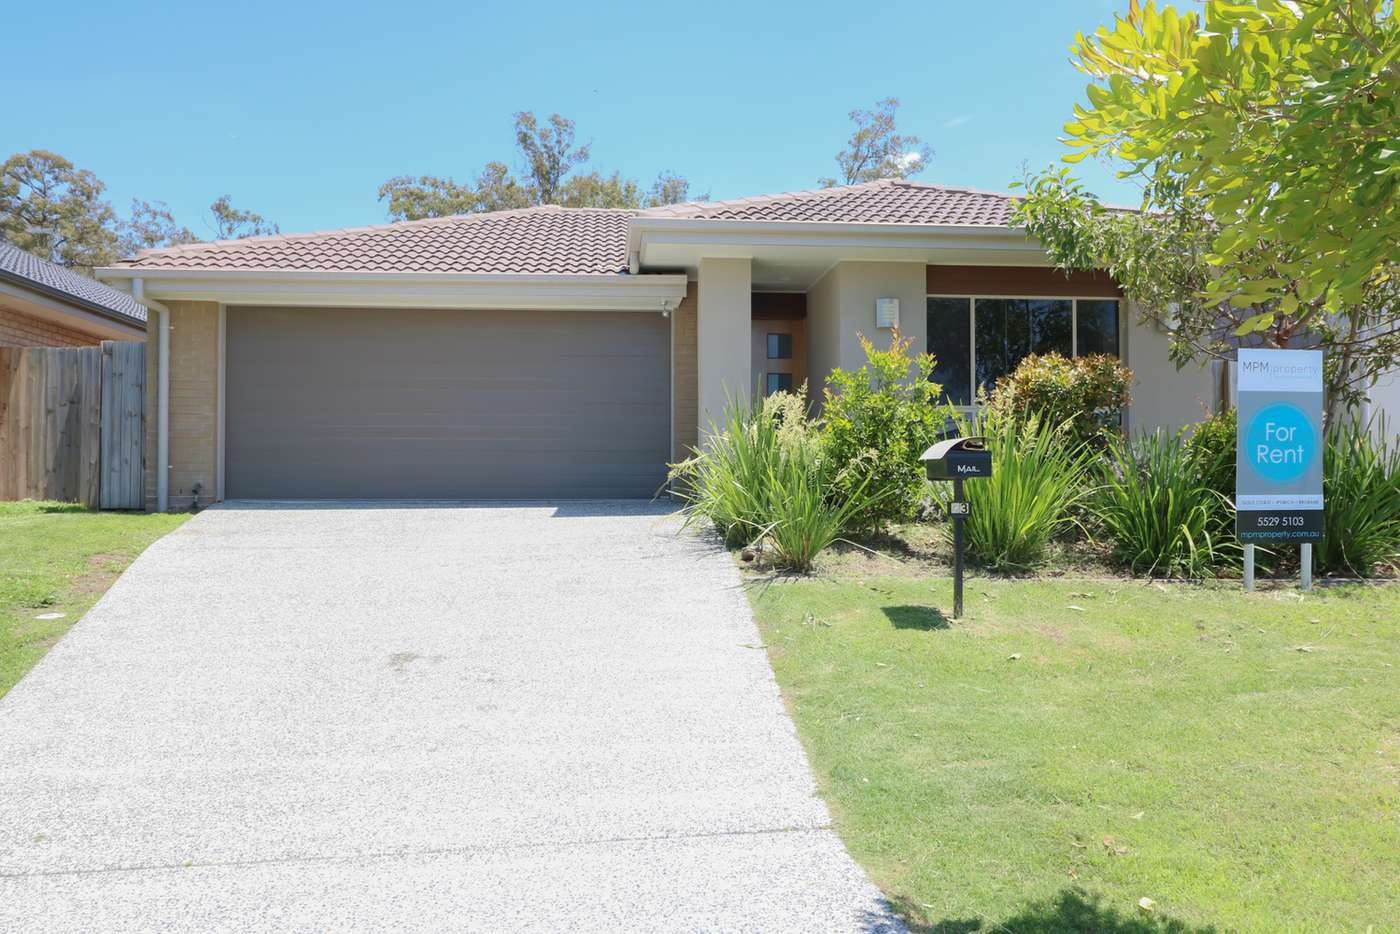 Main view of Homely house listing, 23 Maurie Pears Crescent, Pimpama QLD 4209